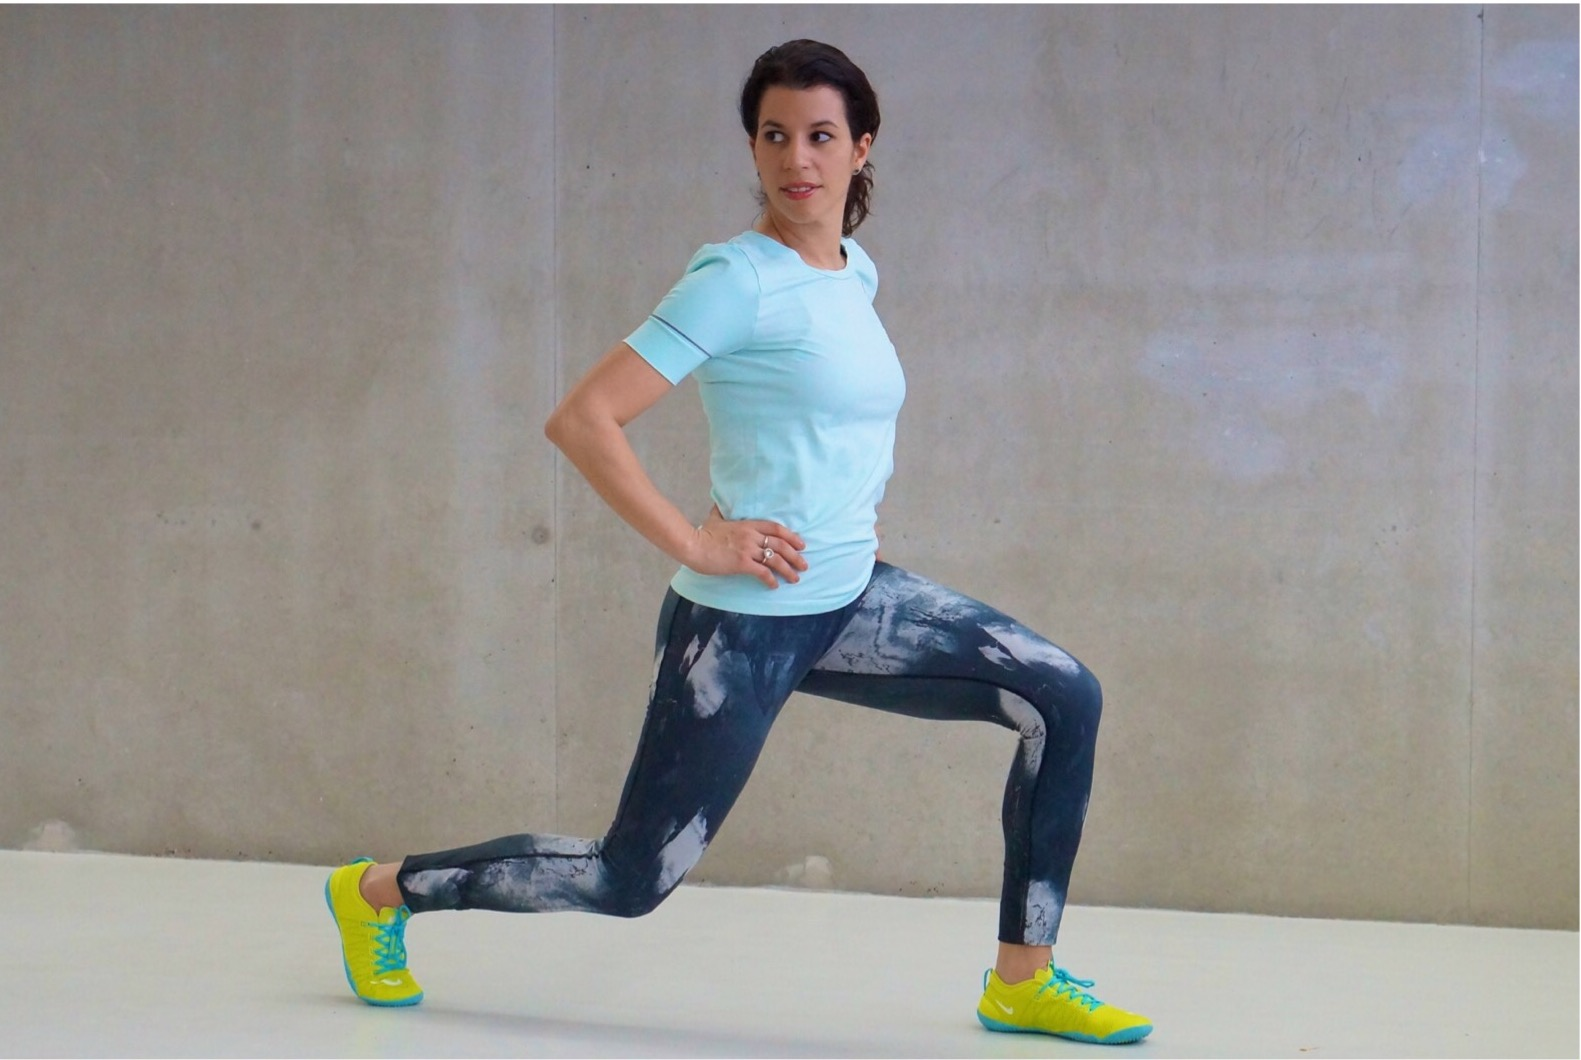 Wintersport workout lunge